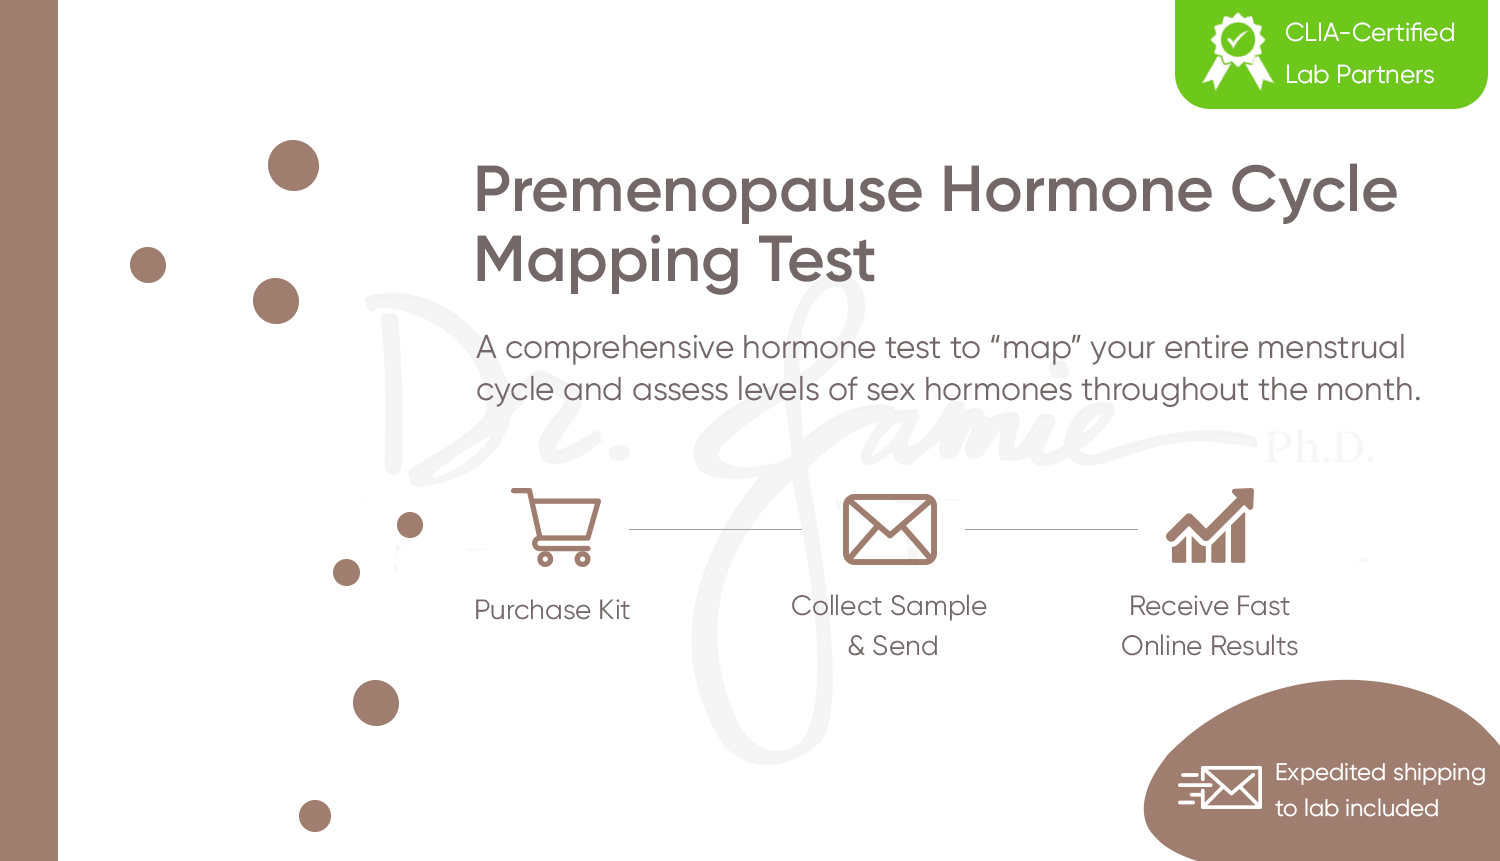 PREMENOPAUSE HORMONE CYCLE MAPPING TEST